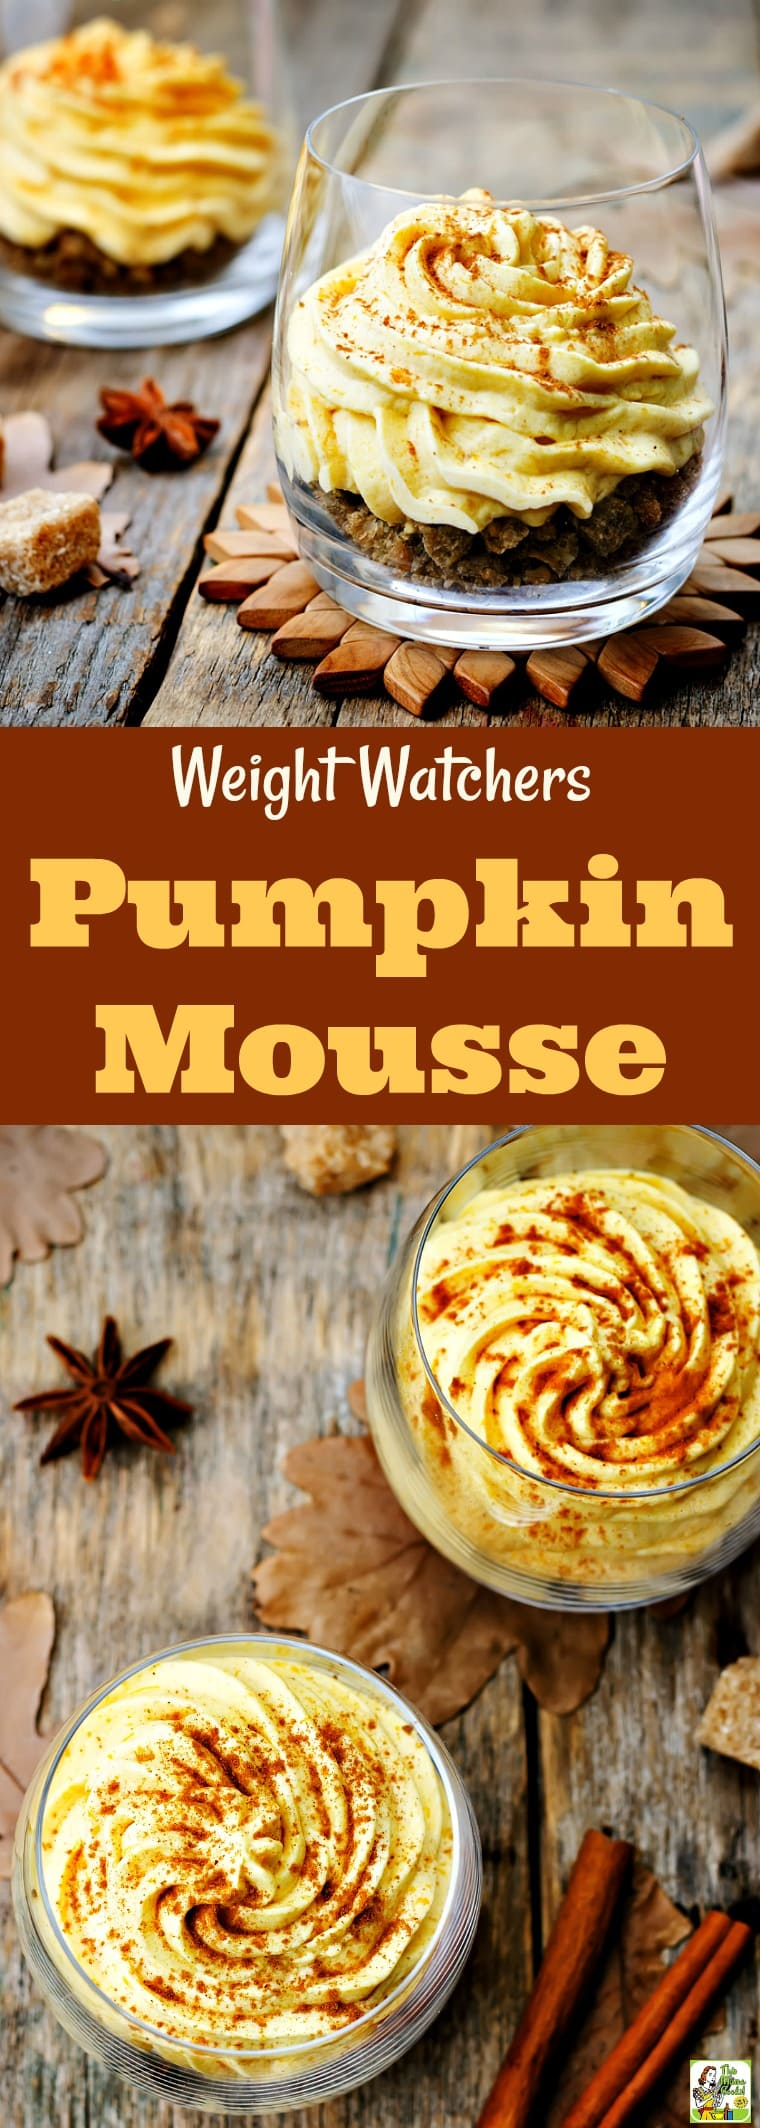 Weight Watchers Pumpkin Mousse Recipe